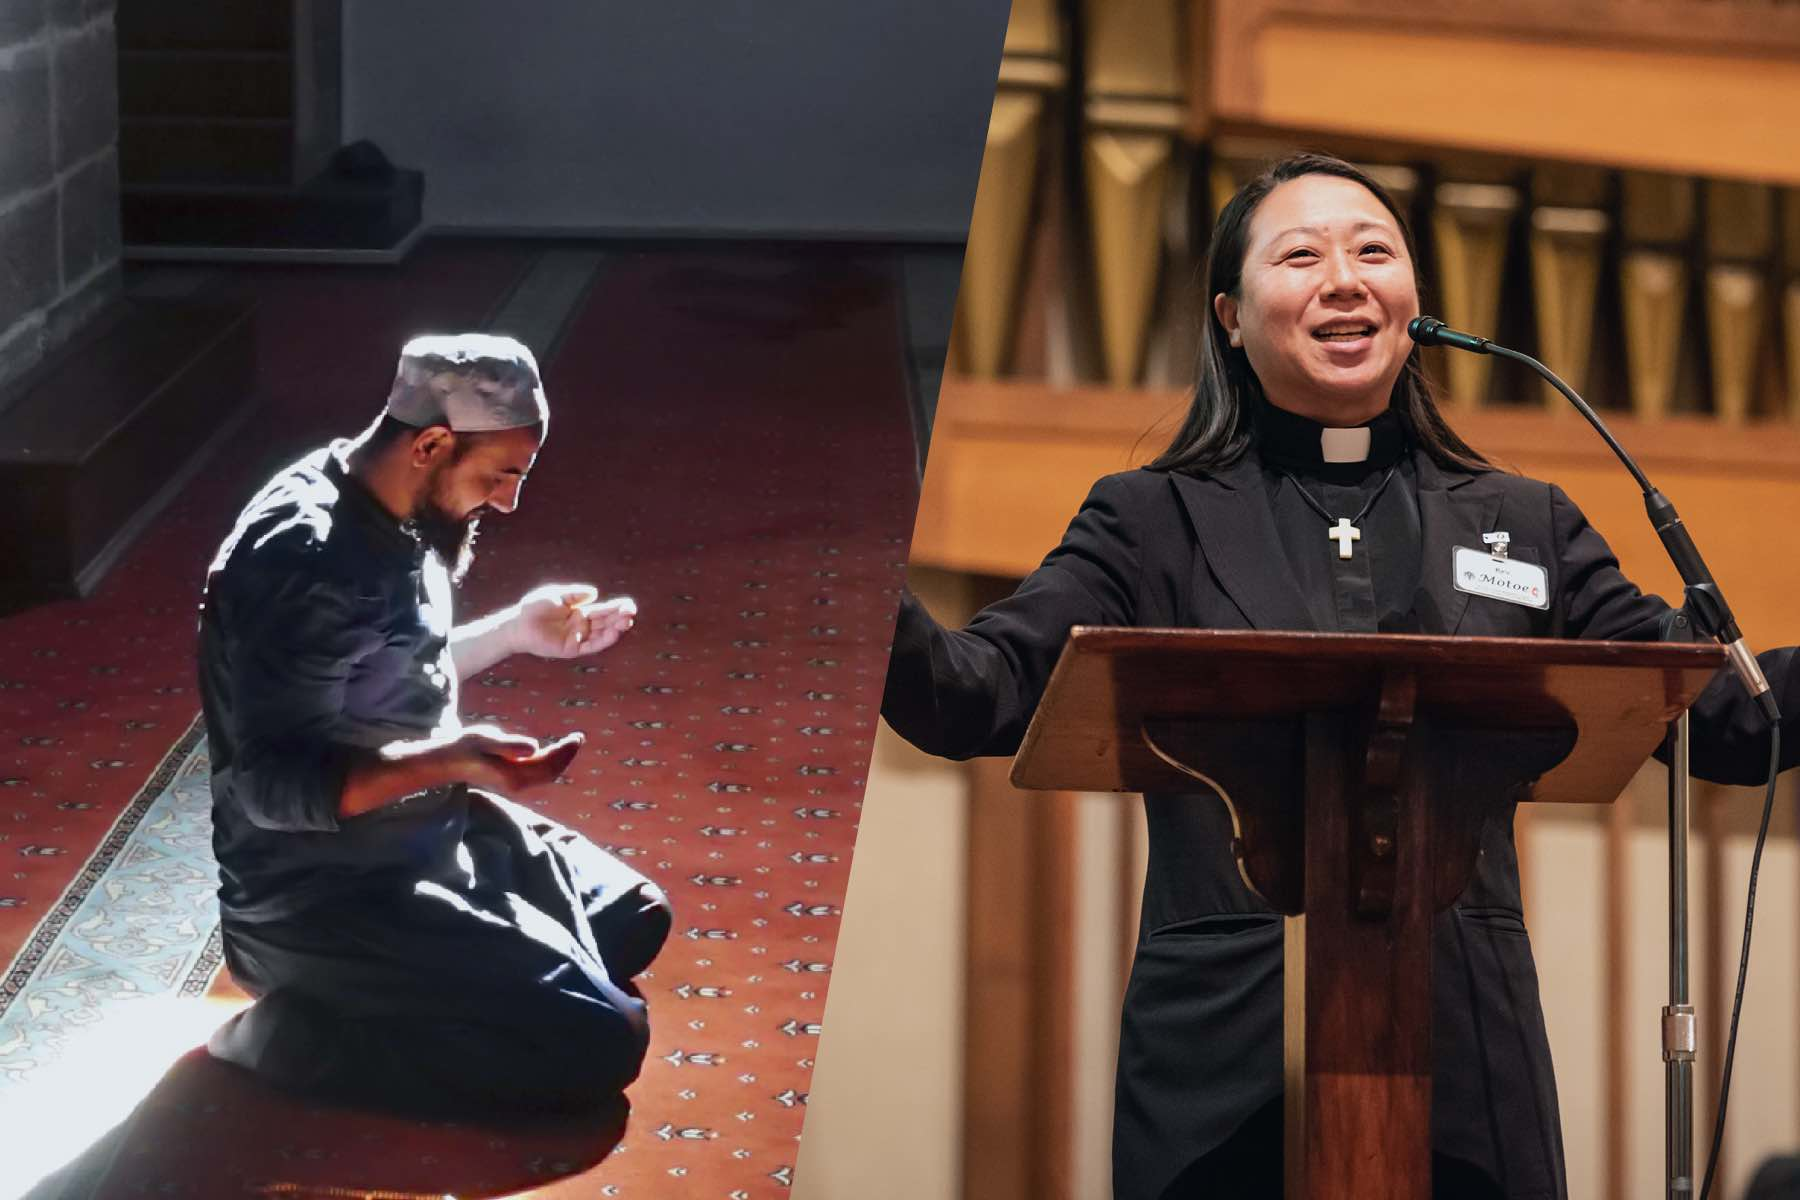 On the left: A Muslim man kneels in prayer alone at a mosque; On the right: a female reverend wearing a collar stands in front of a podium and speaks into a microphone